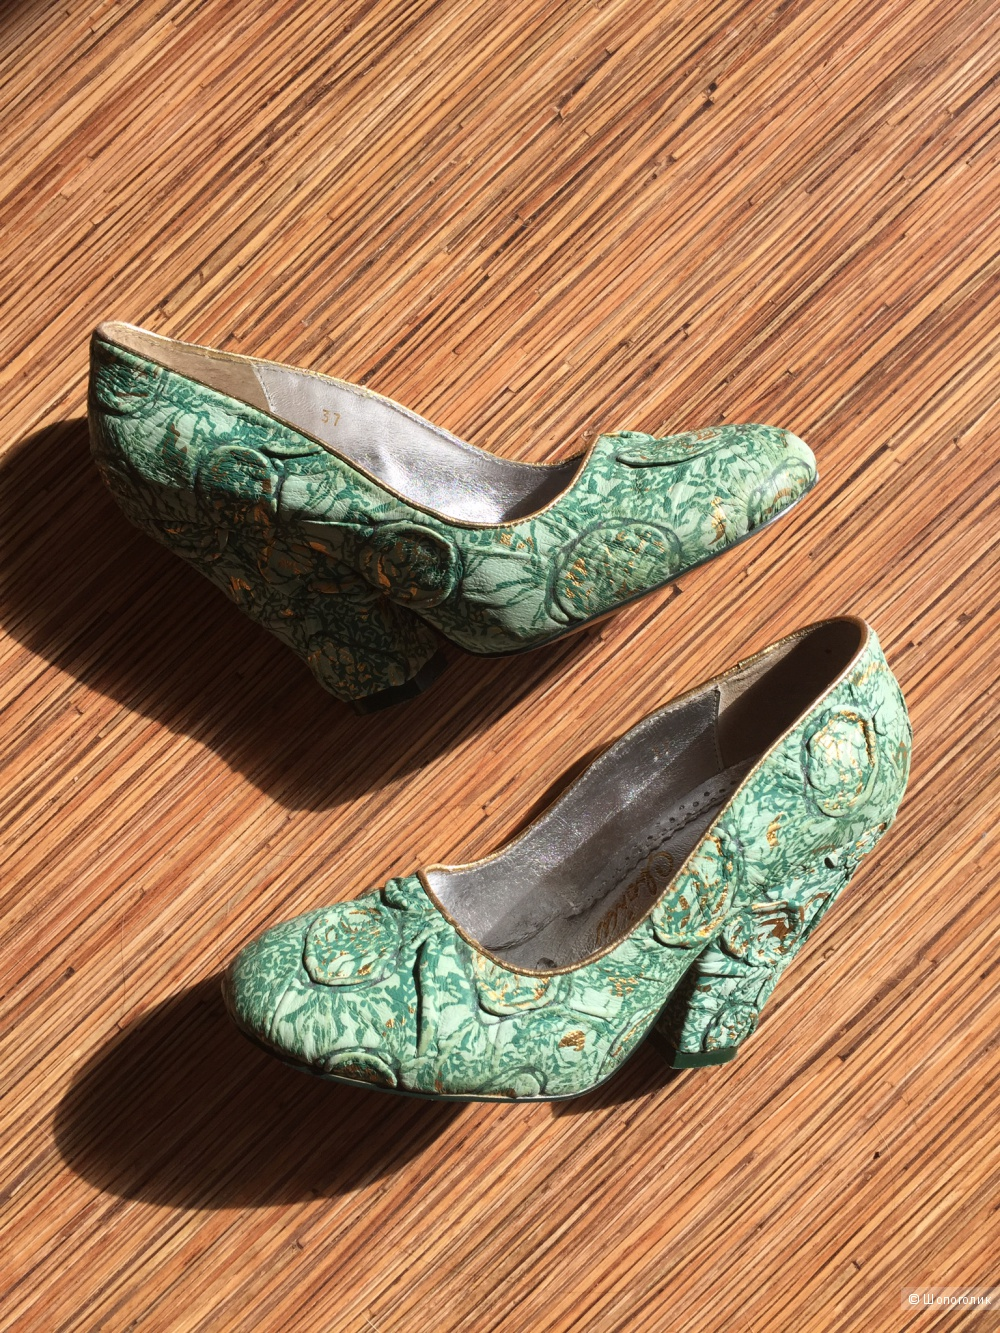 Туфли Irregular choice 37 р-р натуральная кожа